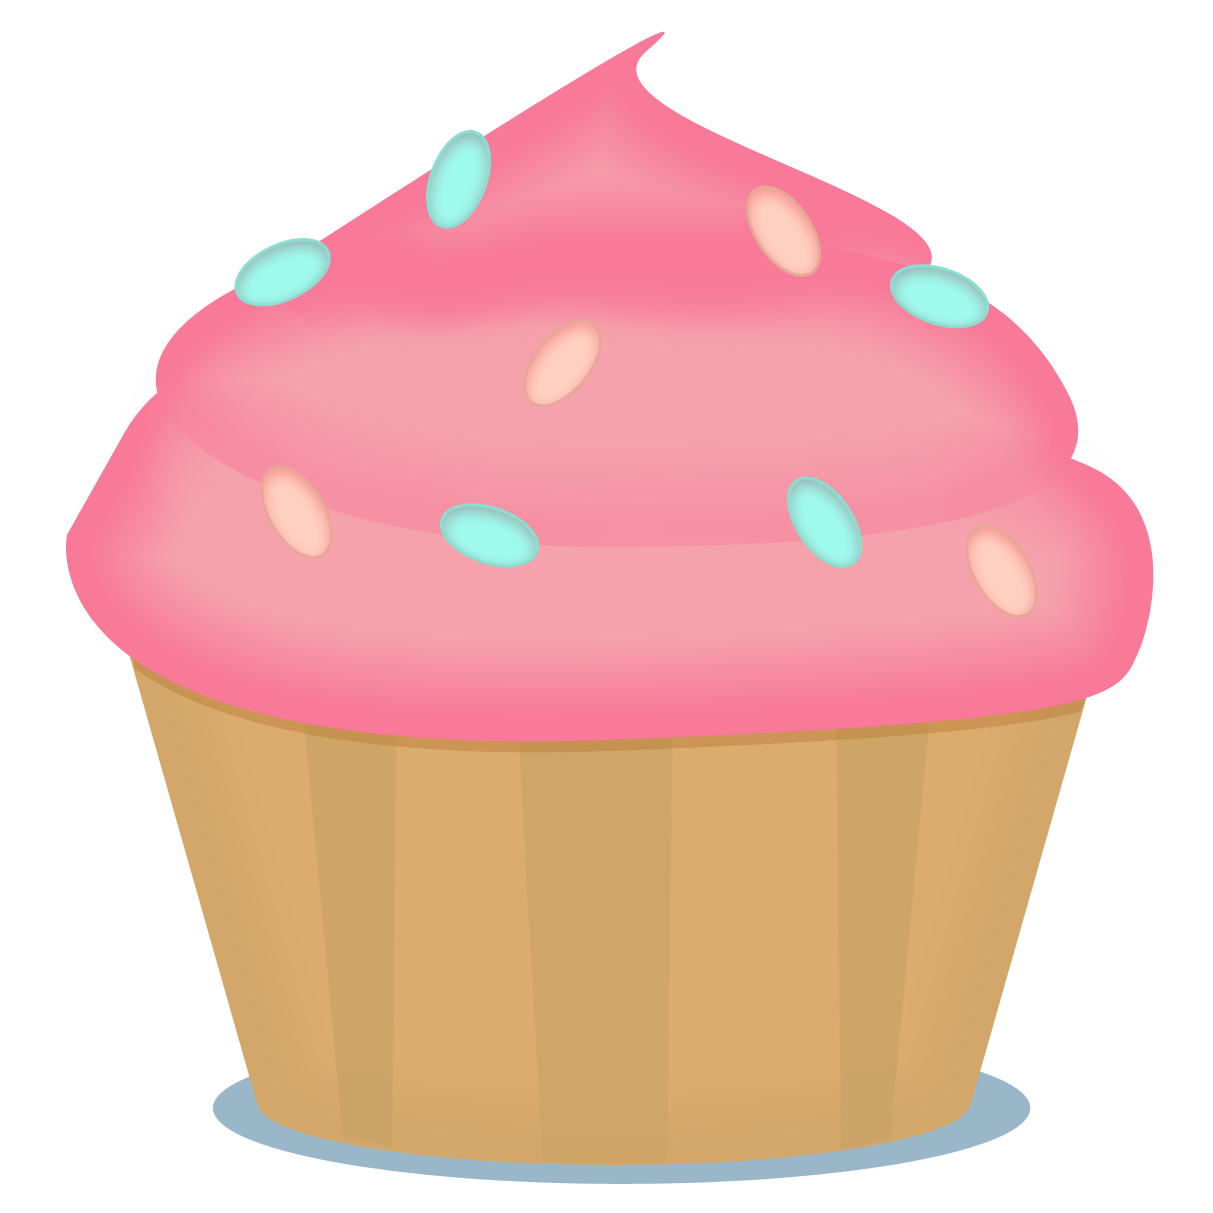 Baking baked goods pencil. Clipart cake layer